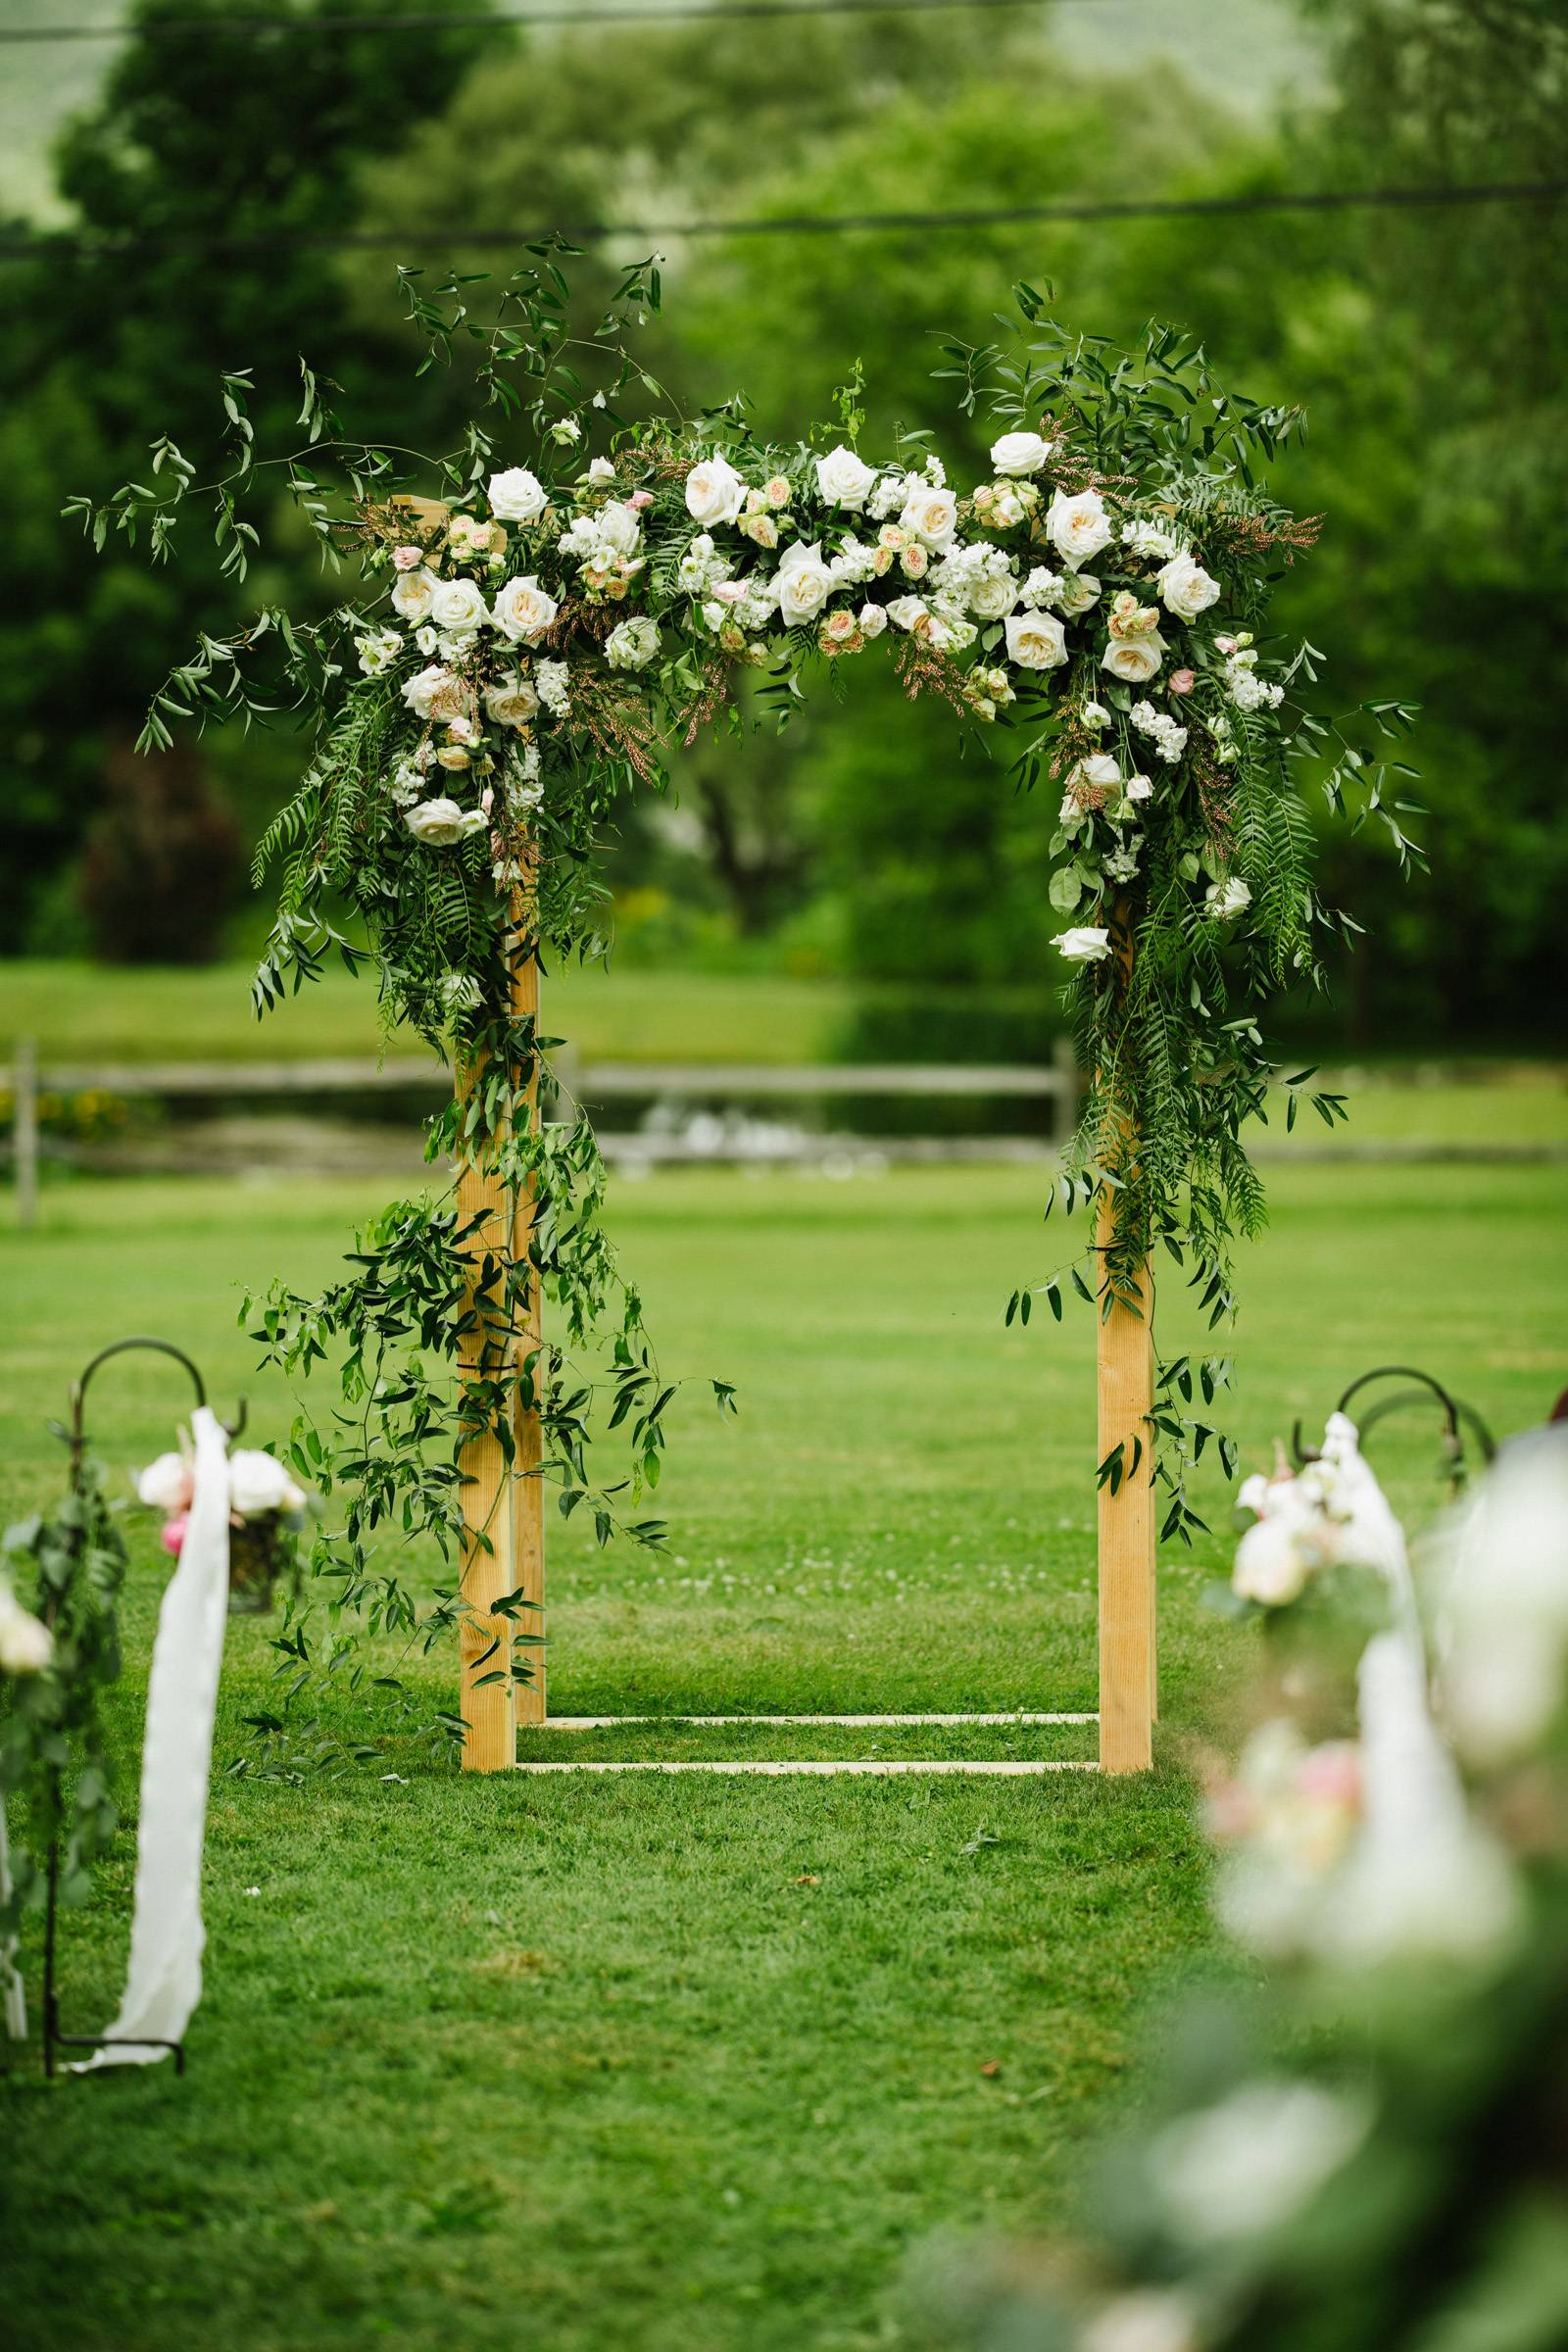 White floral ceremony arch for outdoor summer wedding